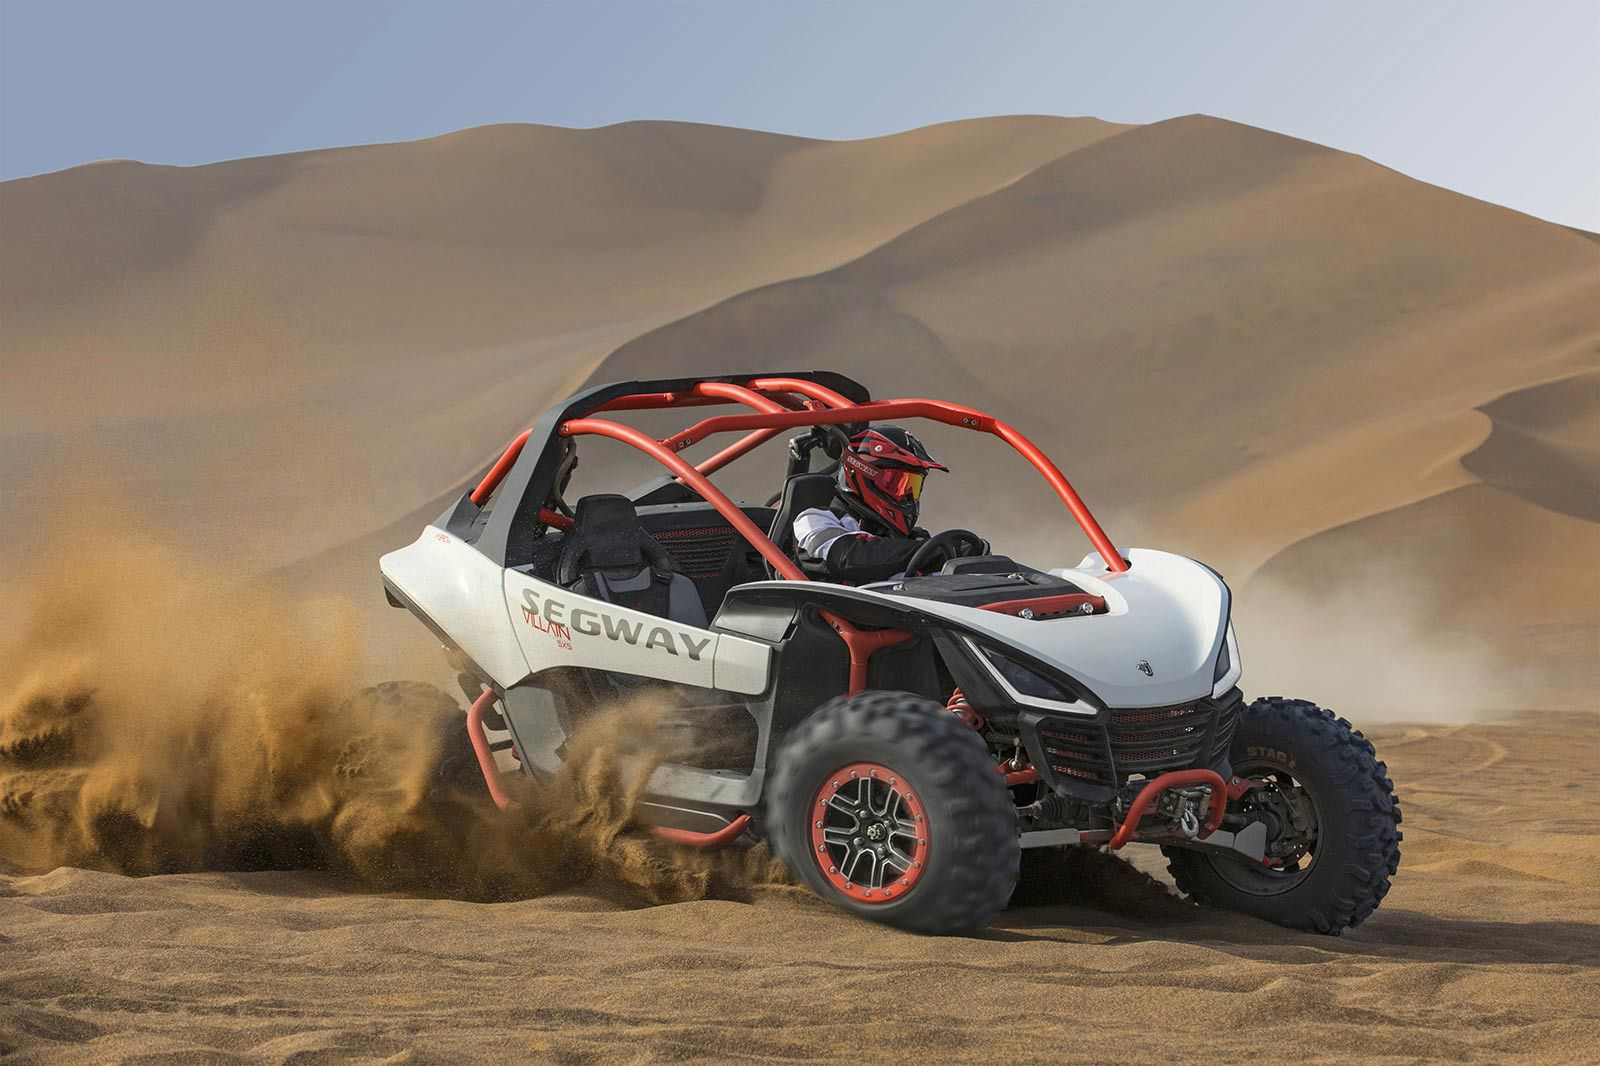 Segway's new Villain sport side-by-side looks to be a formidable dune cruiser.